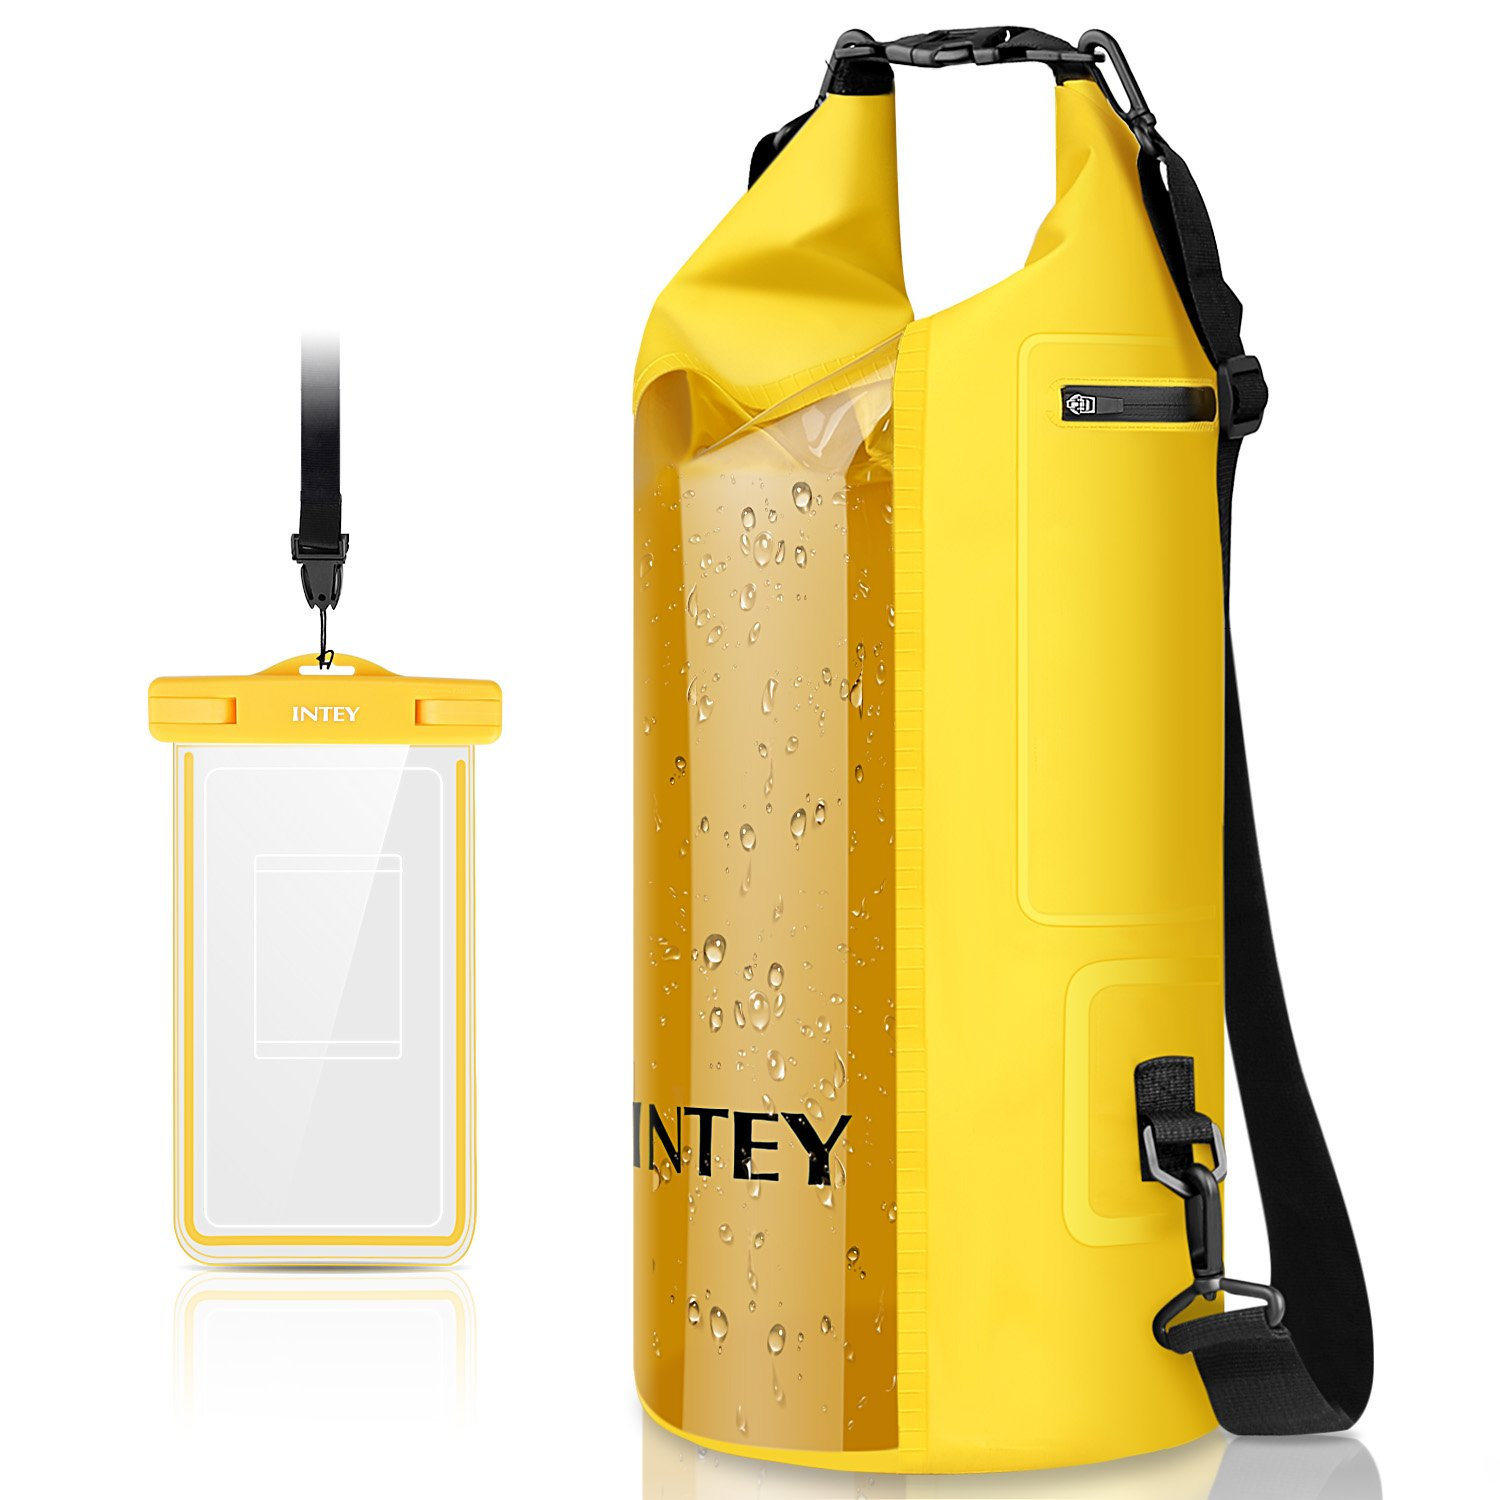 2009aa0f1da9 Amazon.com   INTEY Camping Gear Dry Bag Kayaking Waterproof Dry Bags for  Camping   Traveling   Hiking with Waterproof Phone Bag 20L   Sports    Outdoors